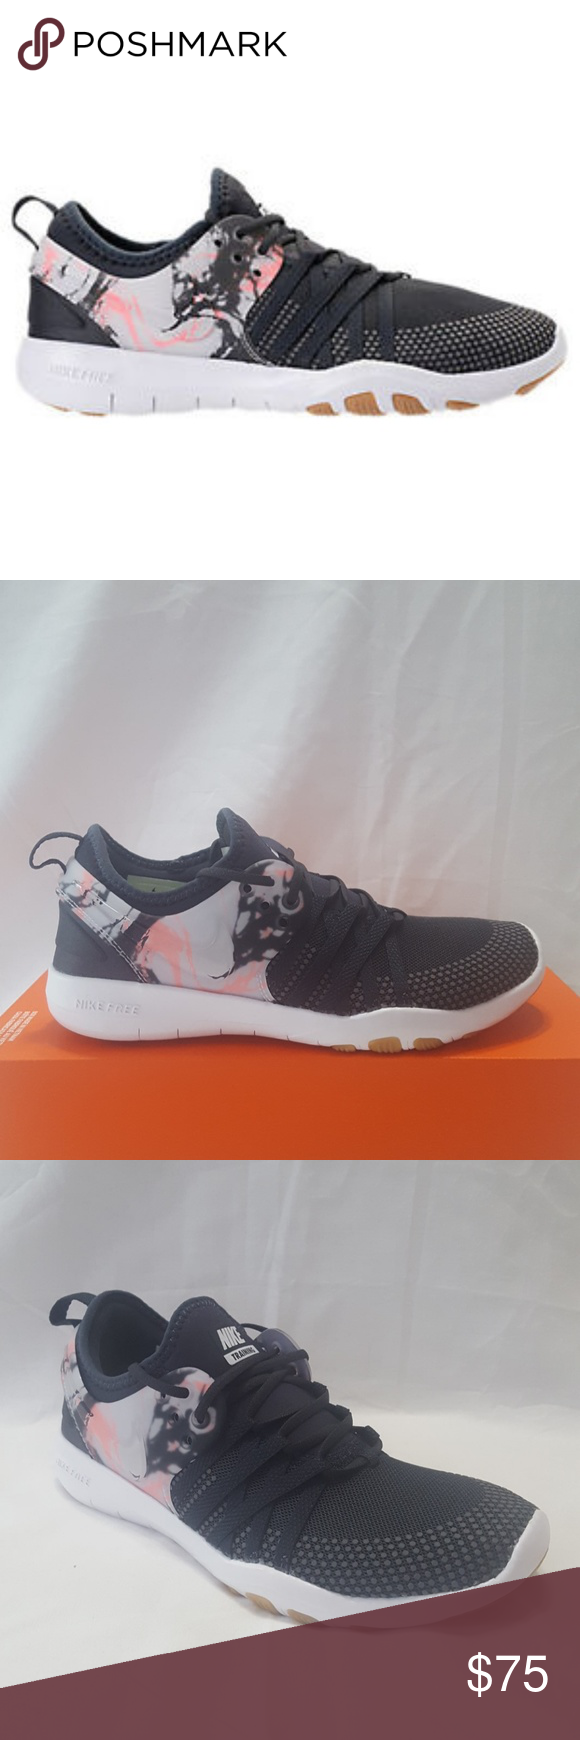 98a5e76fdd29 New Women s Nike Free Trainer 7 Shoe 100% Authentic Description  Woman s  Nike Free TR 7 Condition  Brand New with Box (No Top) Style Code   904651-006 Color  ...